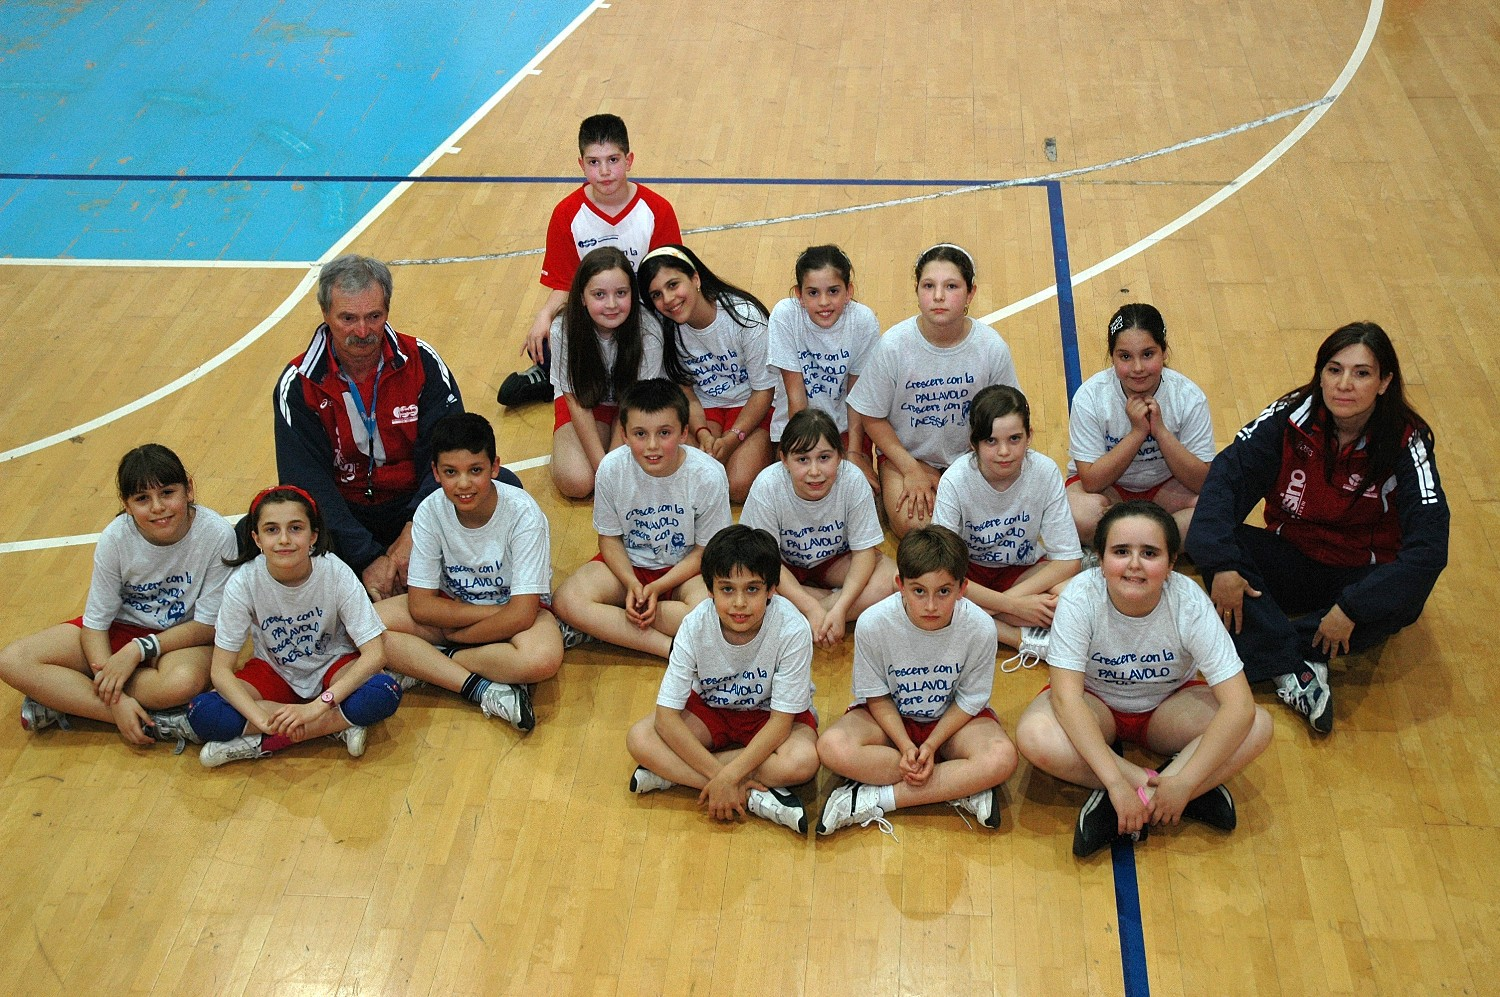 Minivolley 2 2007 / 2008